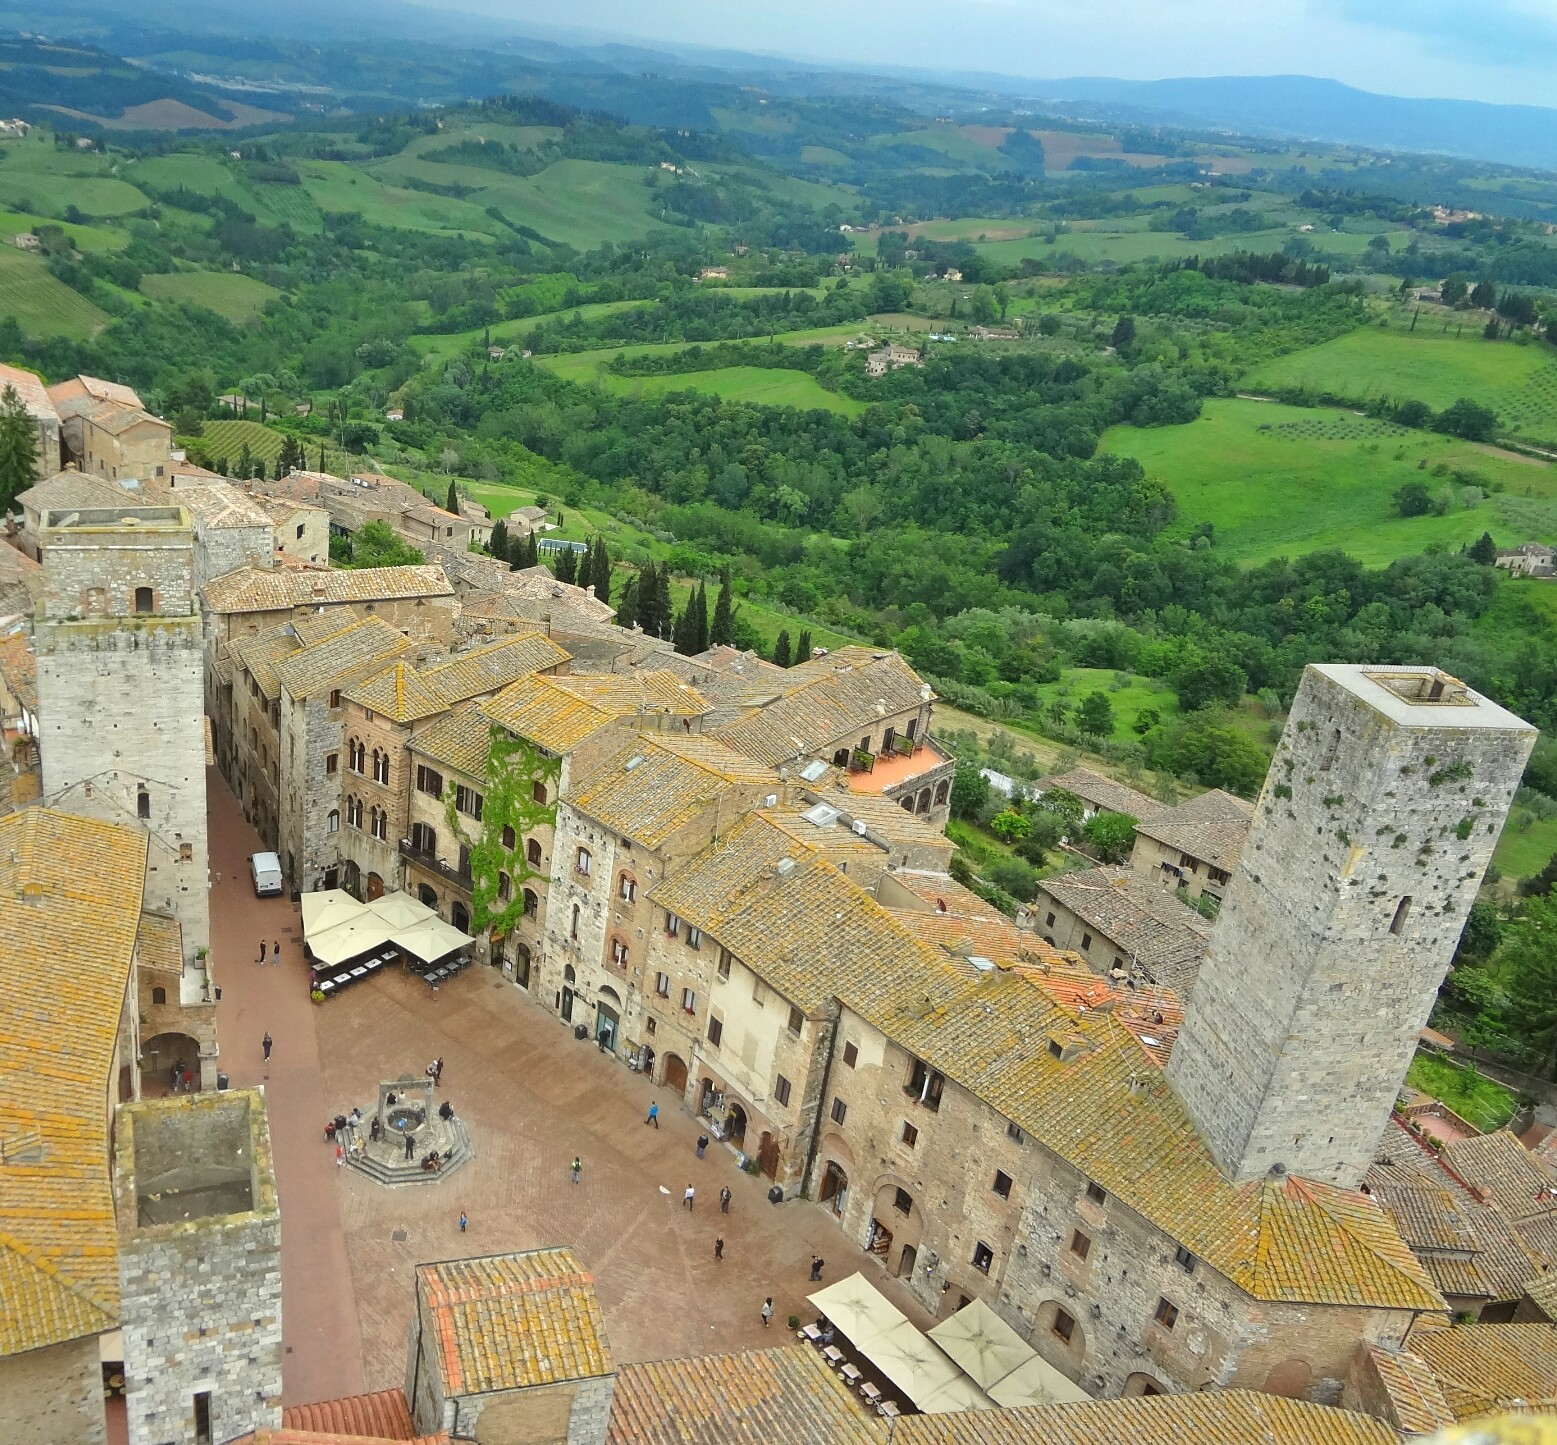 Rooftop View of Piazza Cisterna, San Gimignano